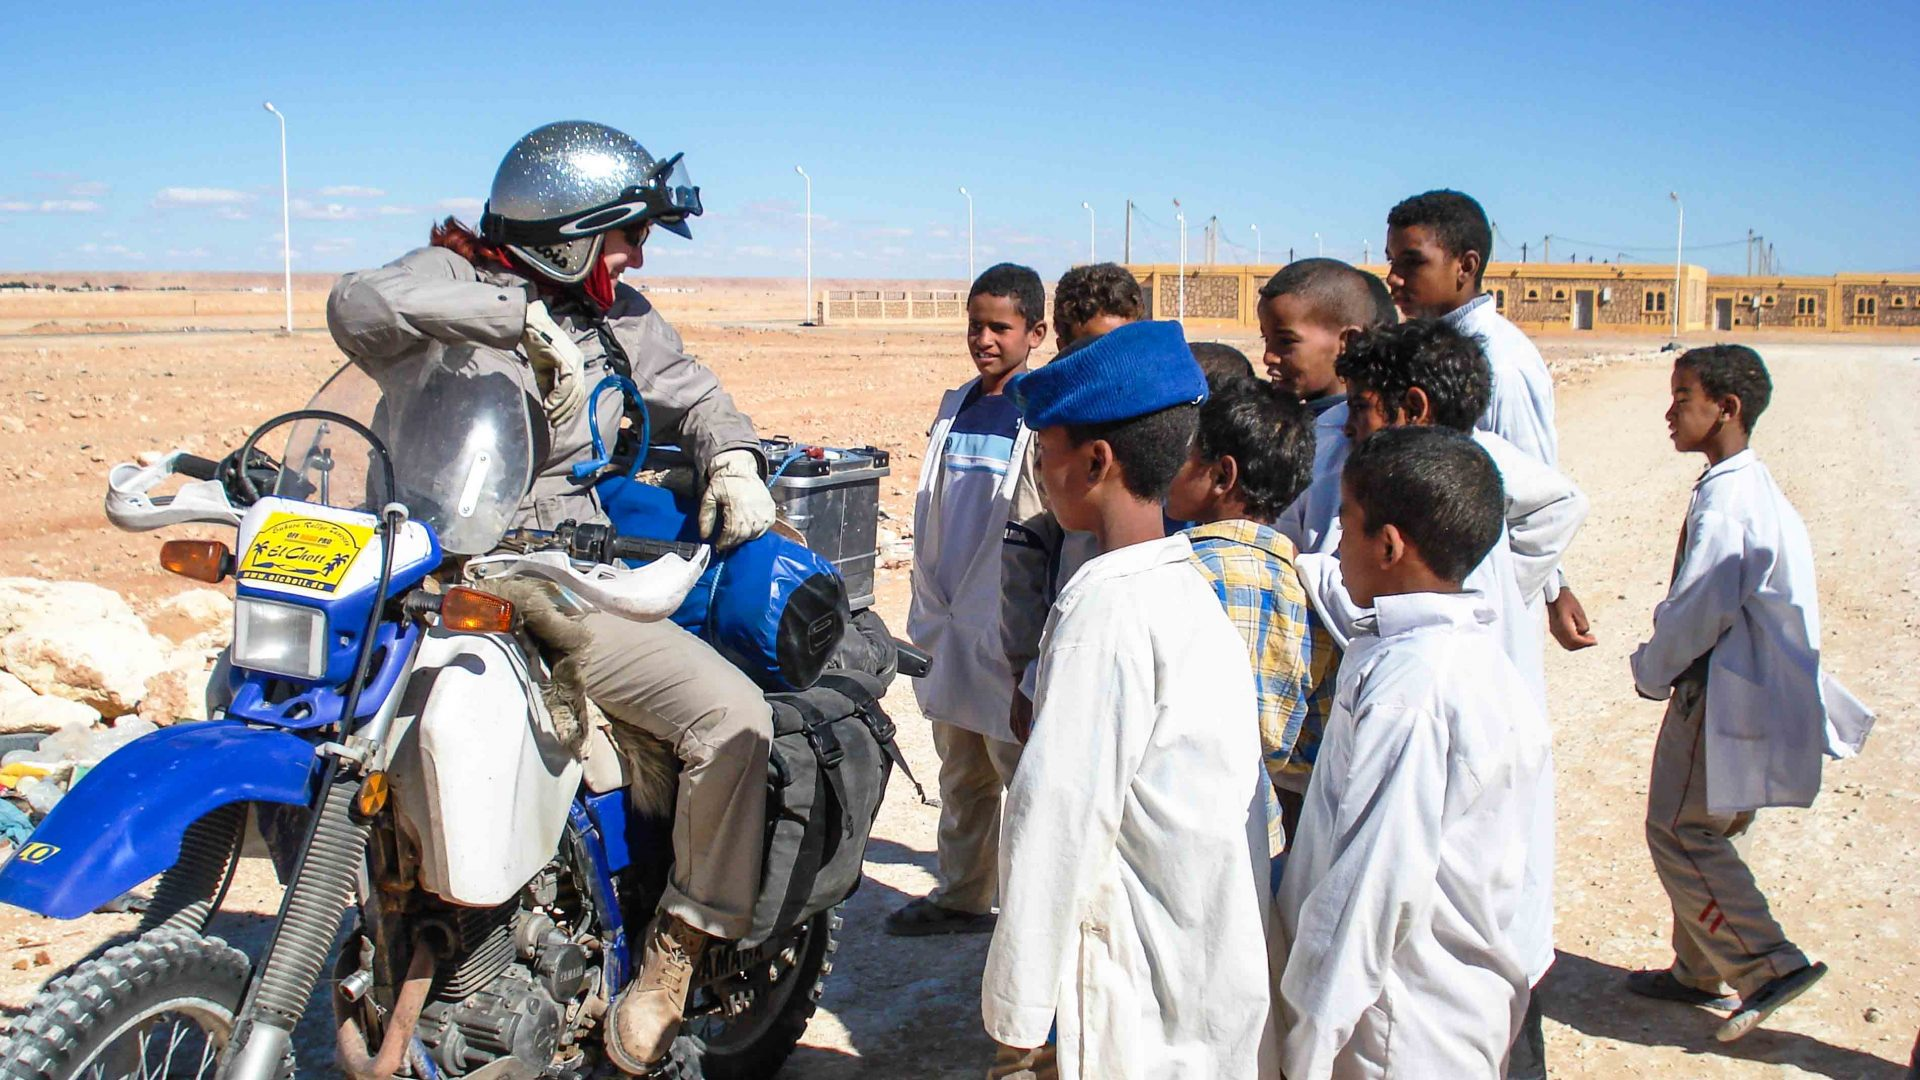 Lois pauses during a motorcycle ride to talk with kids in Algeria.